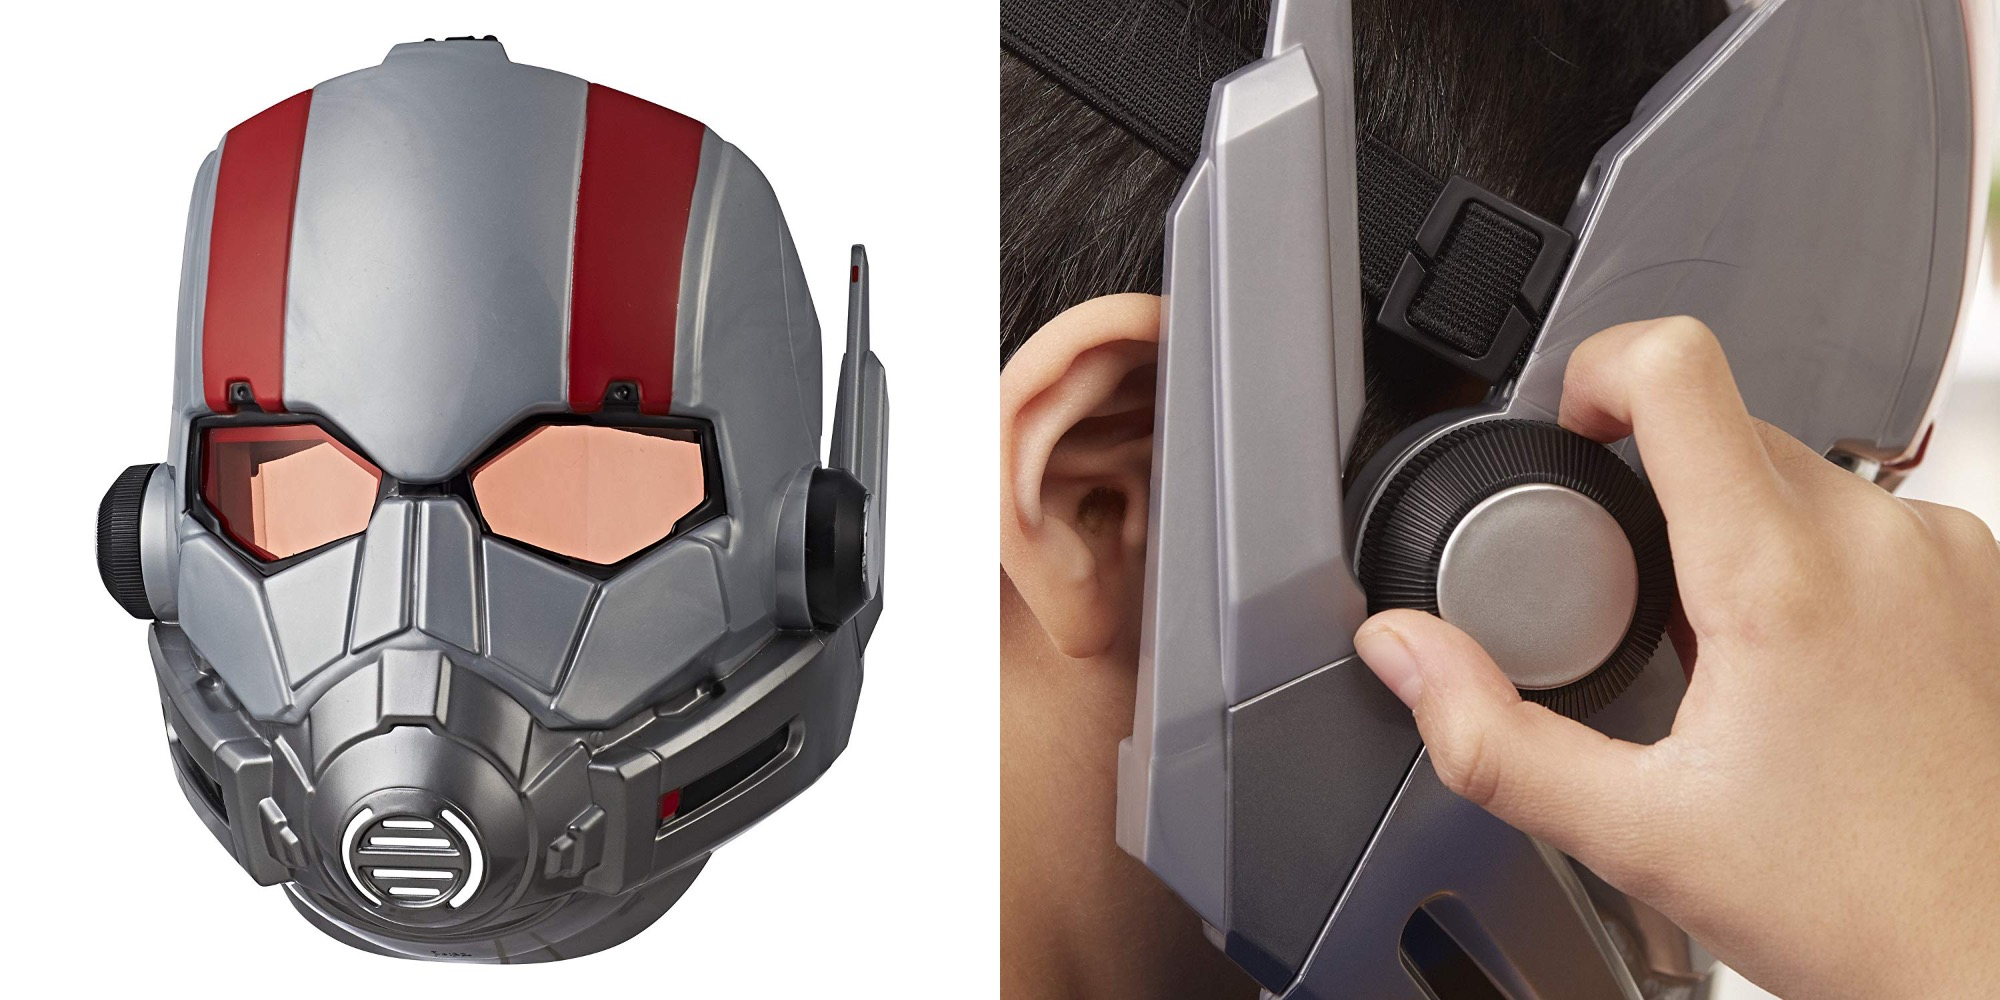 Become a Half-Inch Hero: Marvel's 3-in-1 Ant-Man Vision Mask is $10 shipped (50% off)